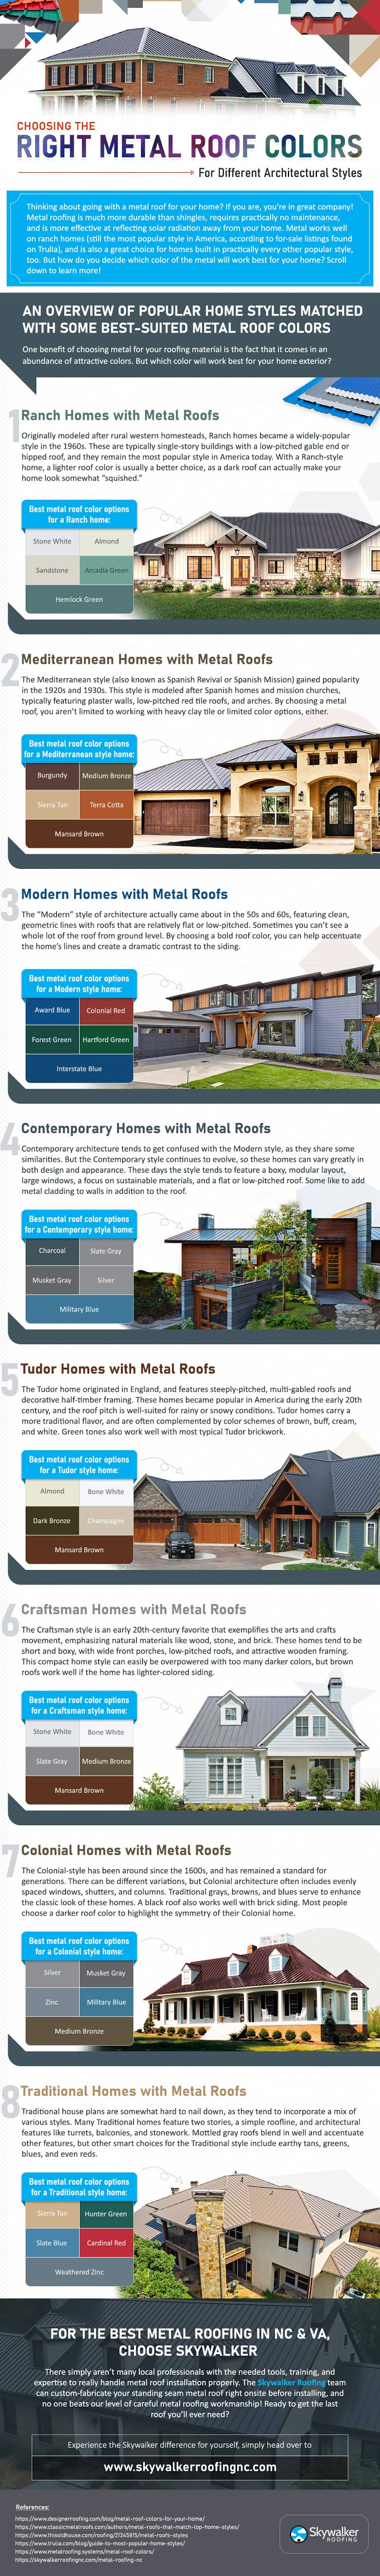 Choosing the Right Metal Roof Colors for Different Architectural Styles #infographic #Home & Garden #Metal Roof Colors #Architectural Styles